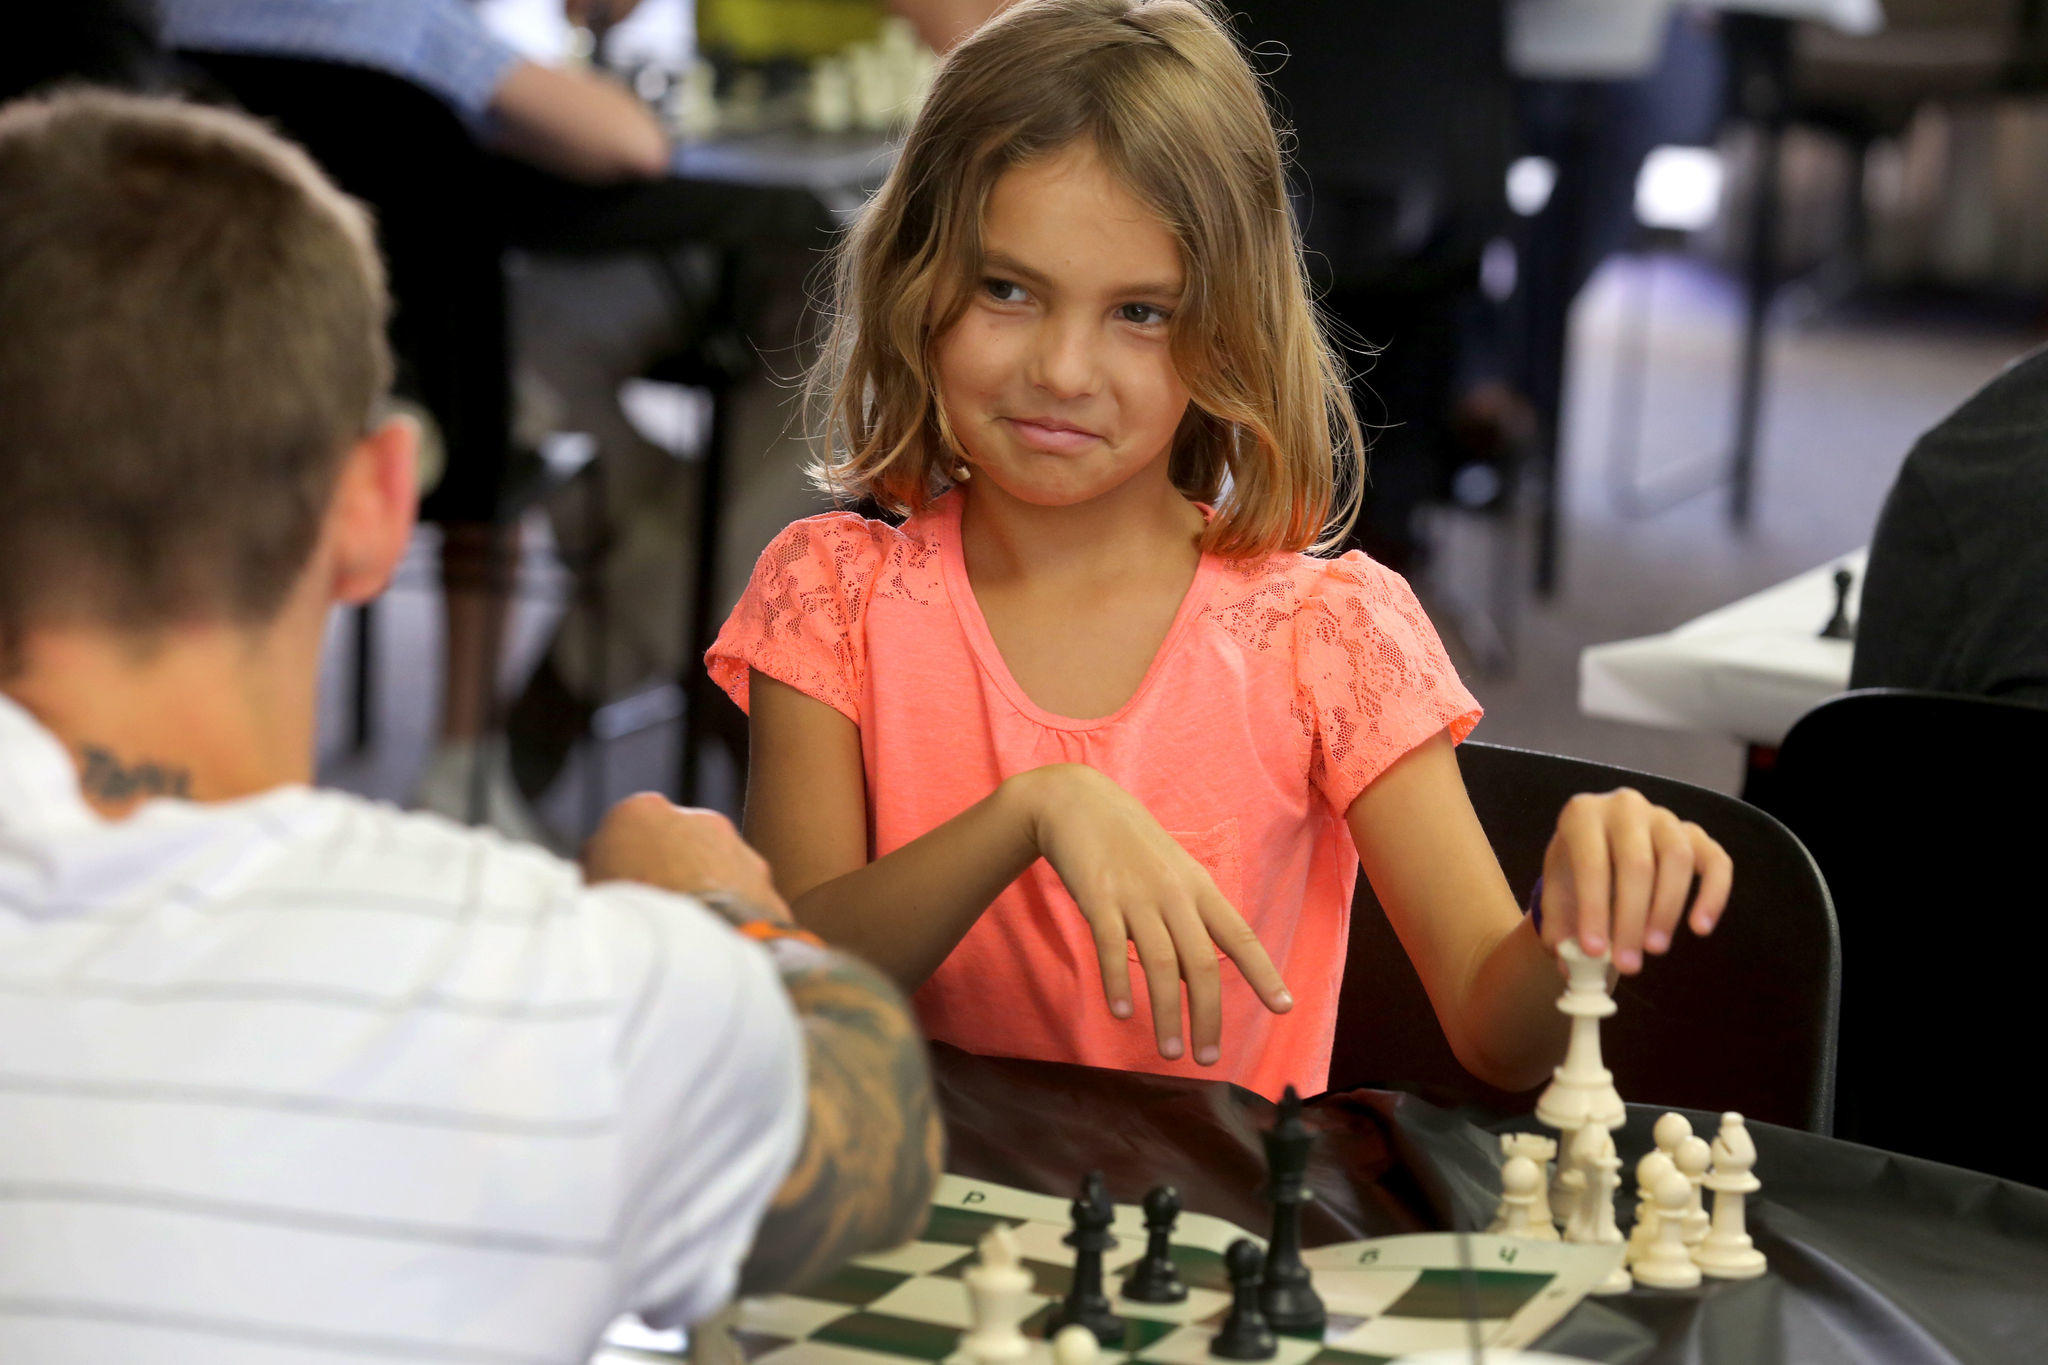 Zachary Bernier and his daughter Kayla, 8, play chess during the Mayors' Chess Challenge at Sunrise City Hall.